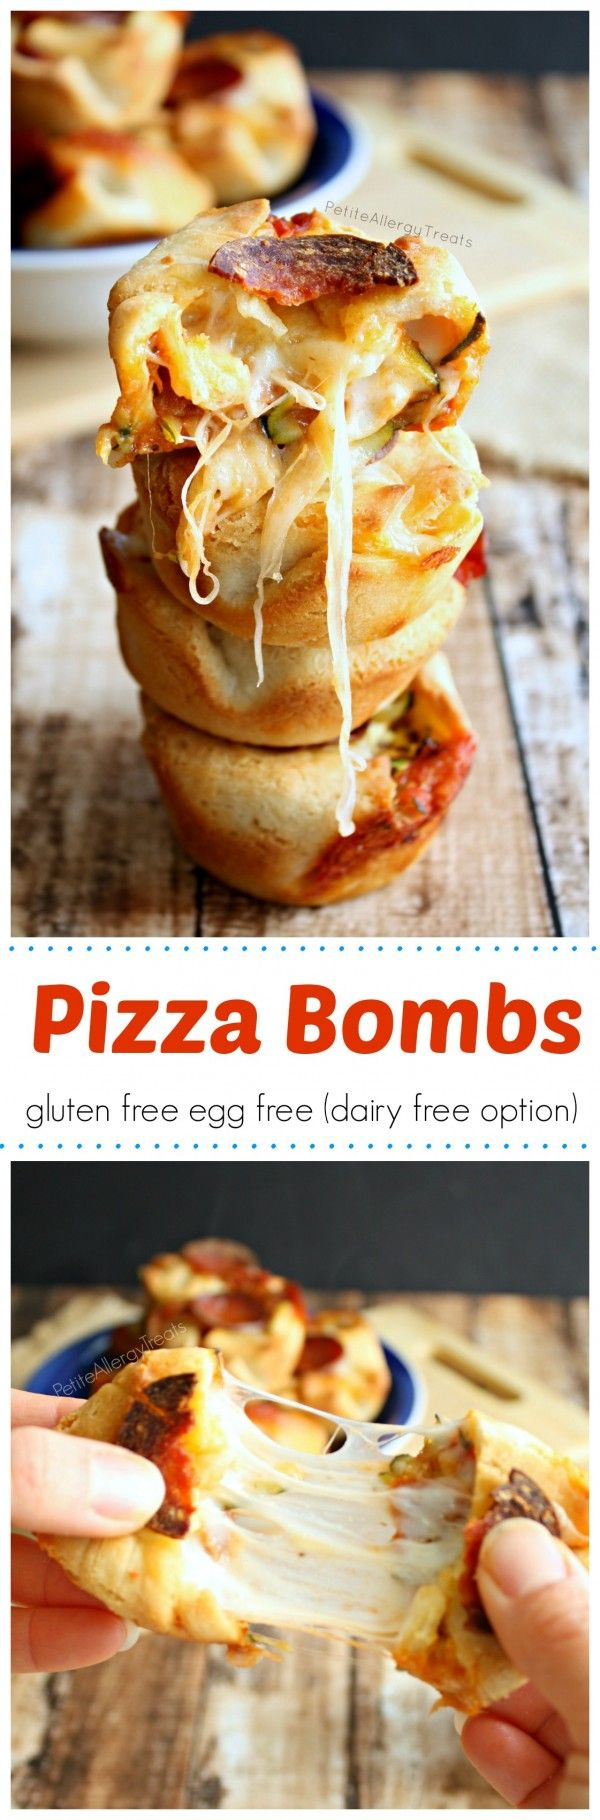 Pizza Bomb Bites (gluten free egg free, dairy free option)- Pizza pockets filled with gooey cheese and vegetables